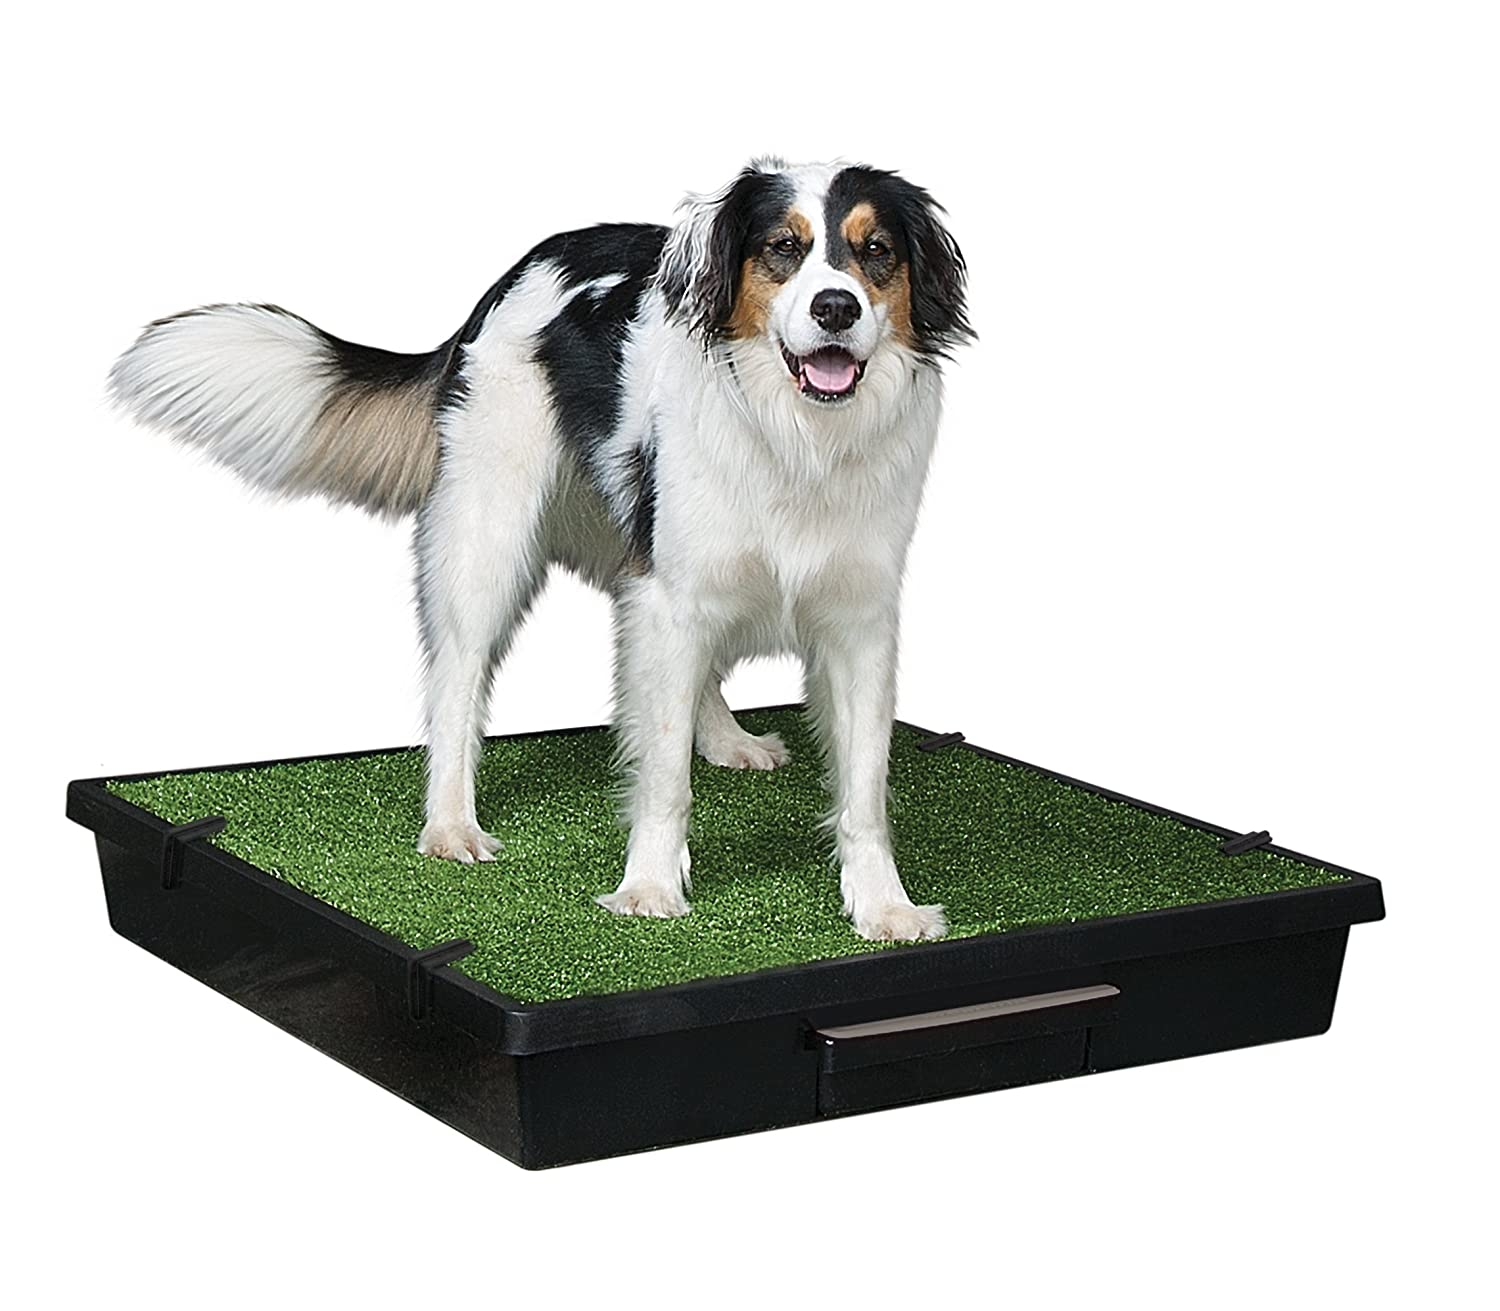 Large PetSafe Pet Loo Portable Indoor Outdoor Dog Potty, Alternative to Puppy Pads, Large